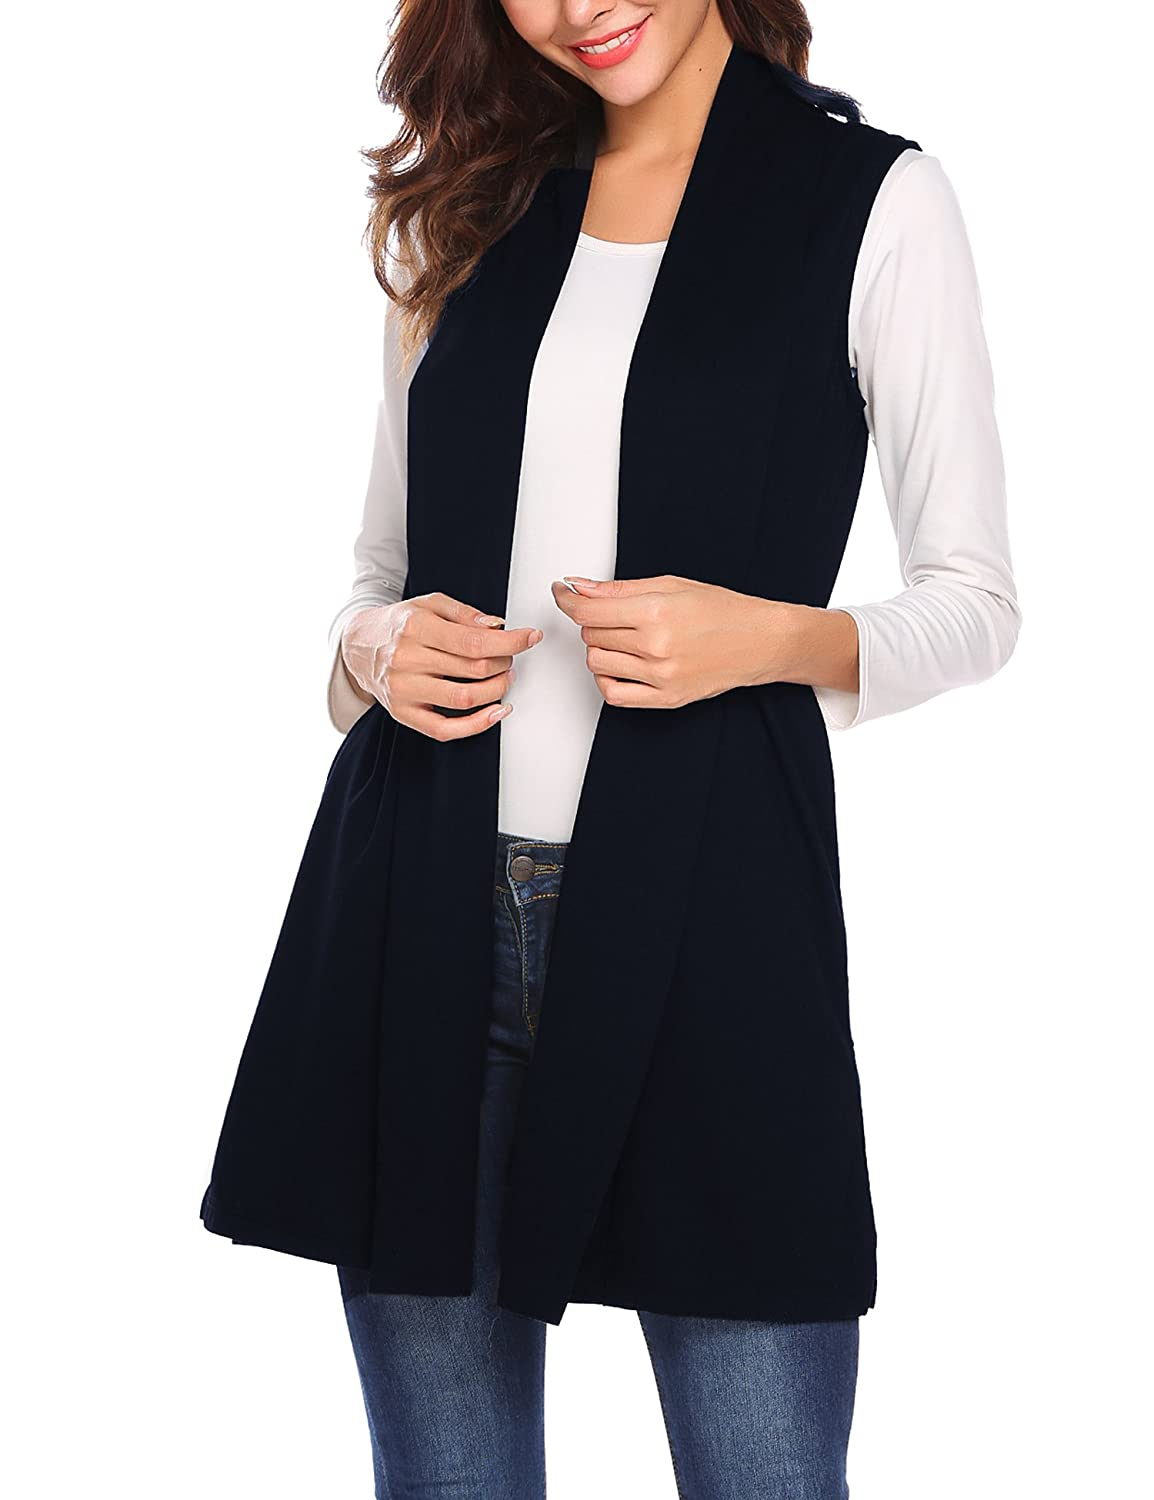 Ladies' Colorful 1920s Sweaters and Cardigans History Beyove Womens Long Vests Sleeveless Draped Lightweight Open Front Cardigan Layering Vest with Side Pockets (S-XXL) $26.99 AT vintagedancer.com